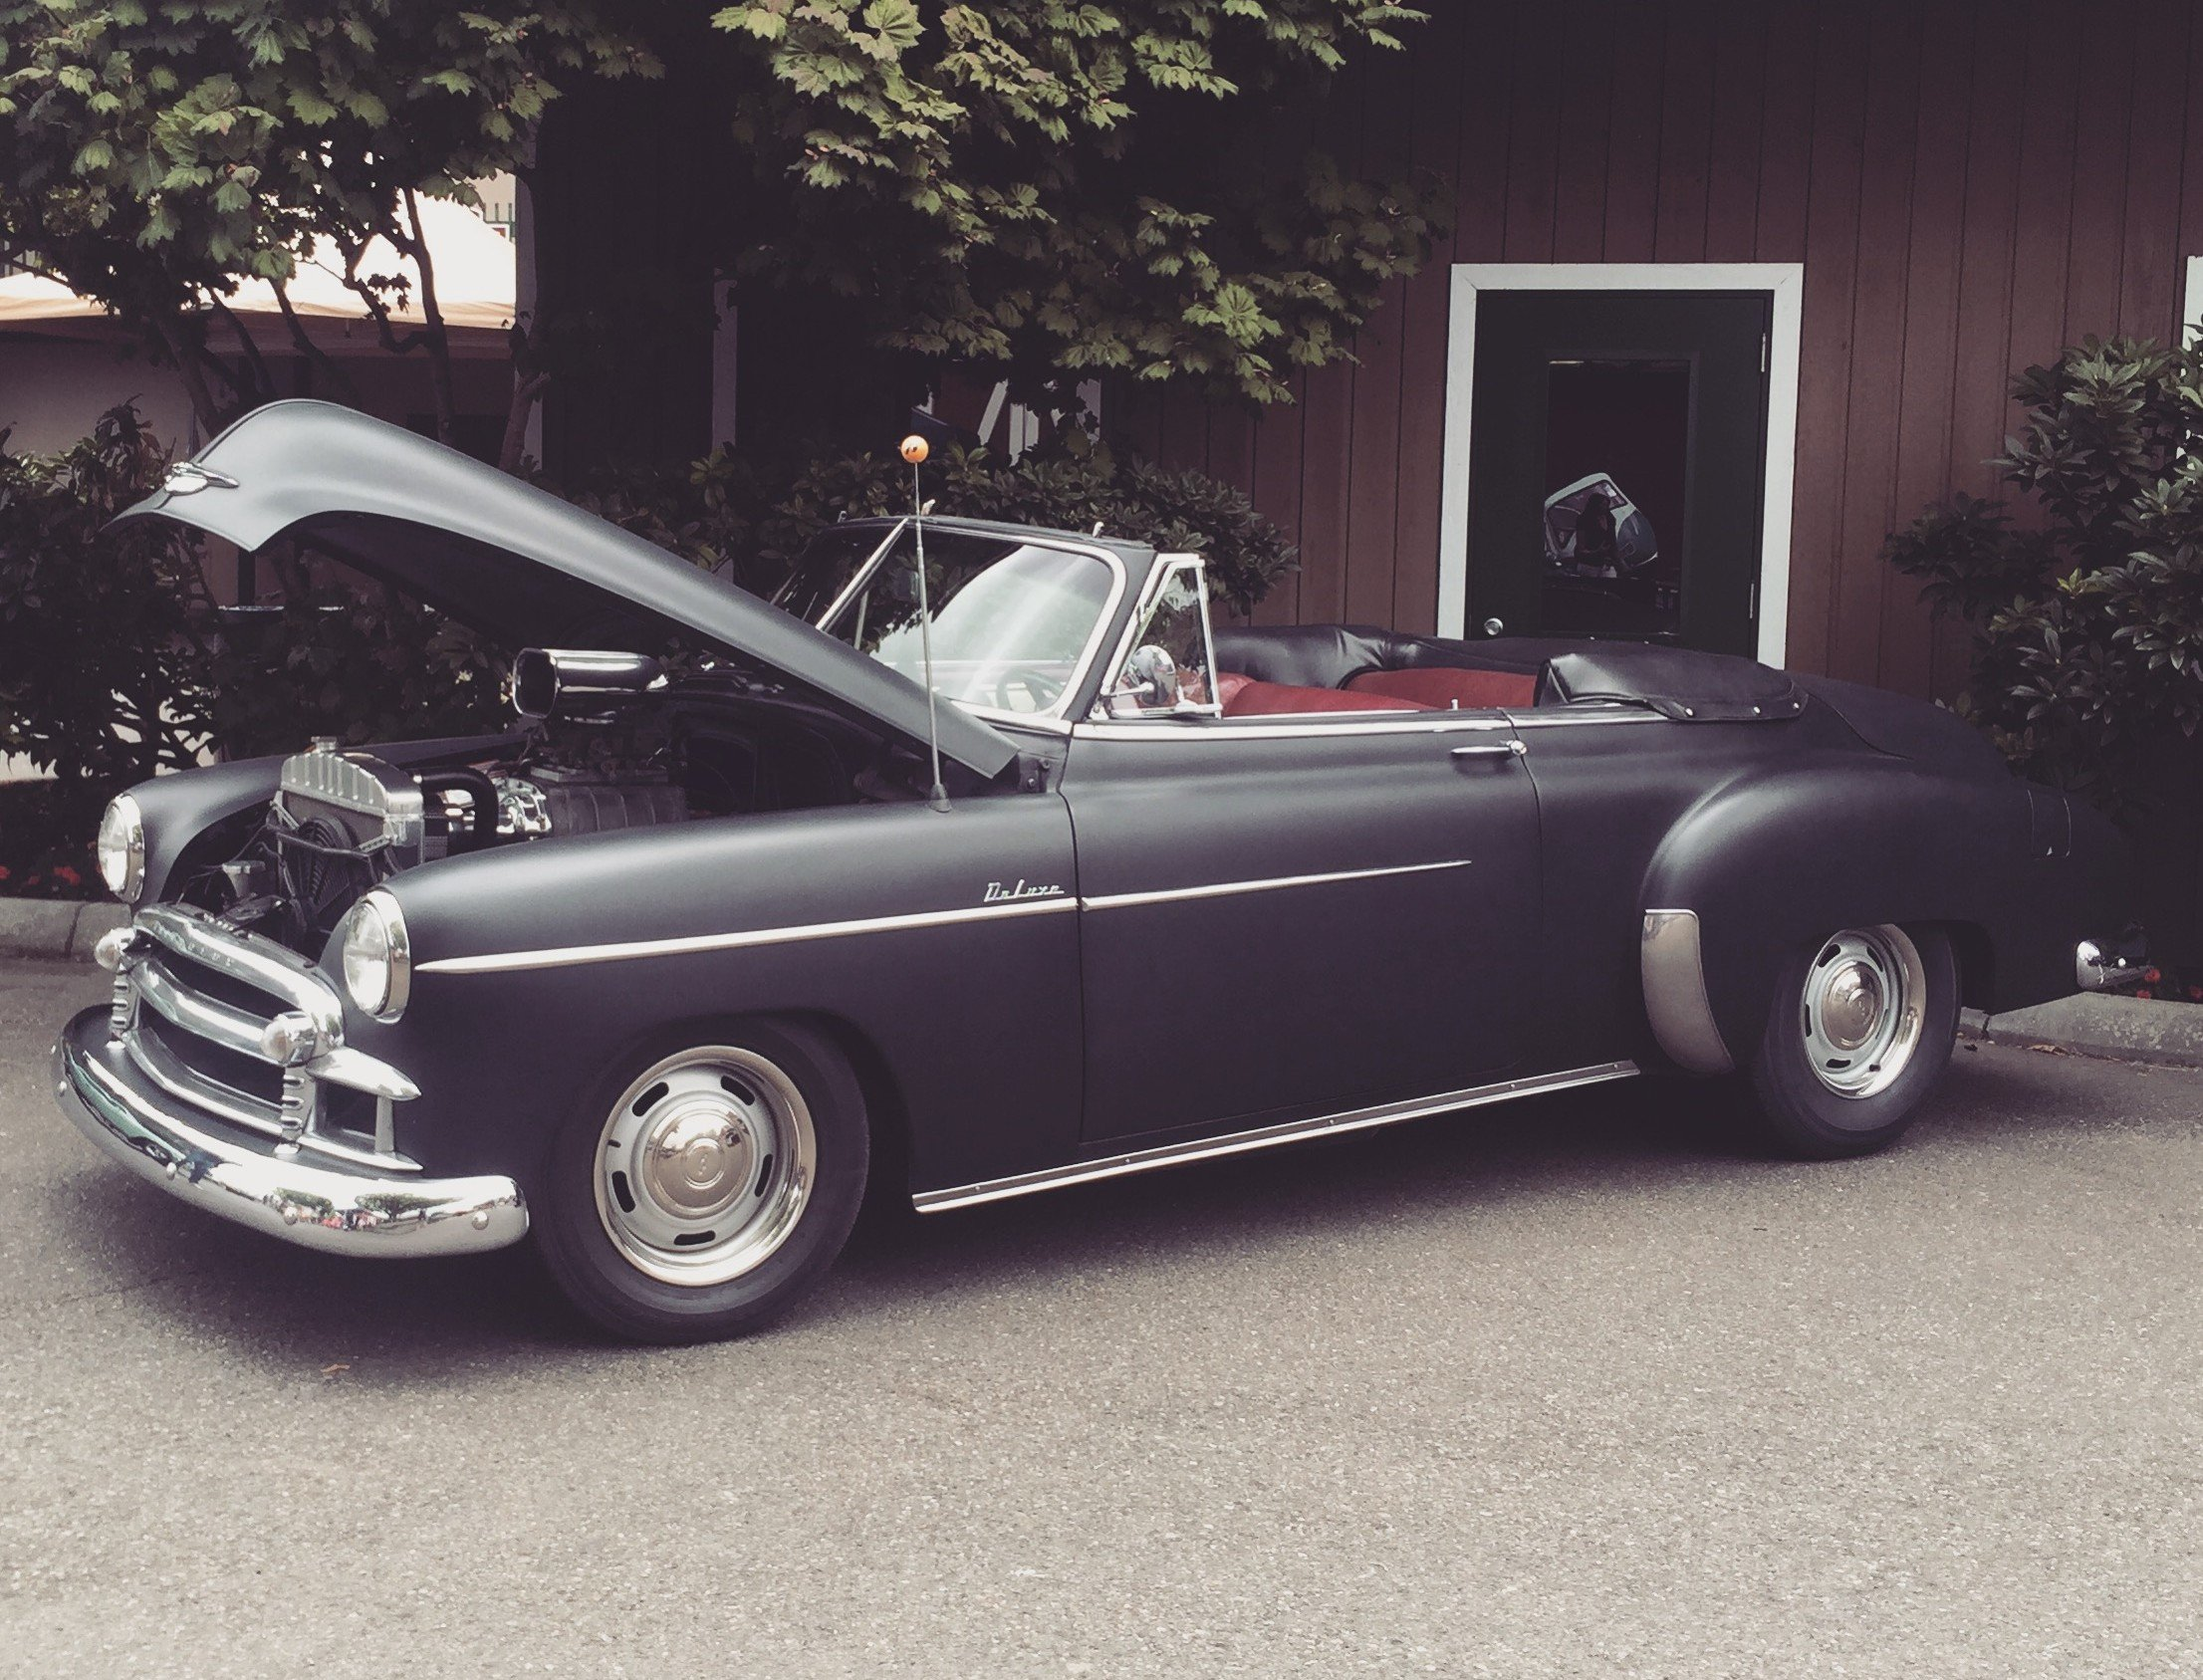 This Classic Chevy Deluxe Convertible Packs a Punch with A Blown Big Block and Rally Wheels